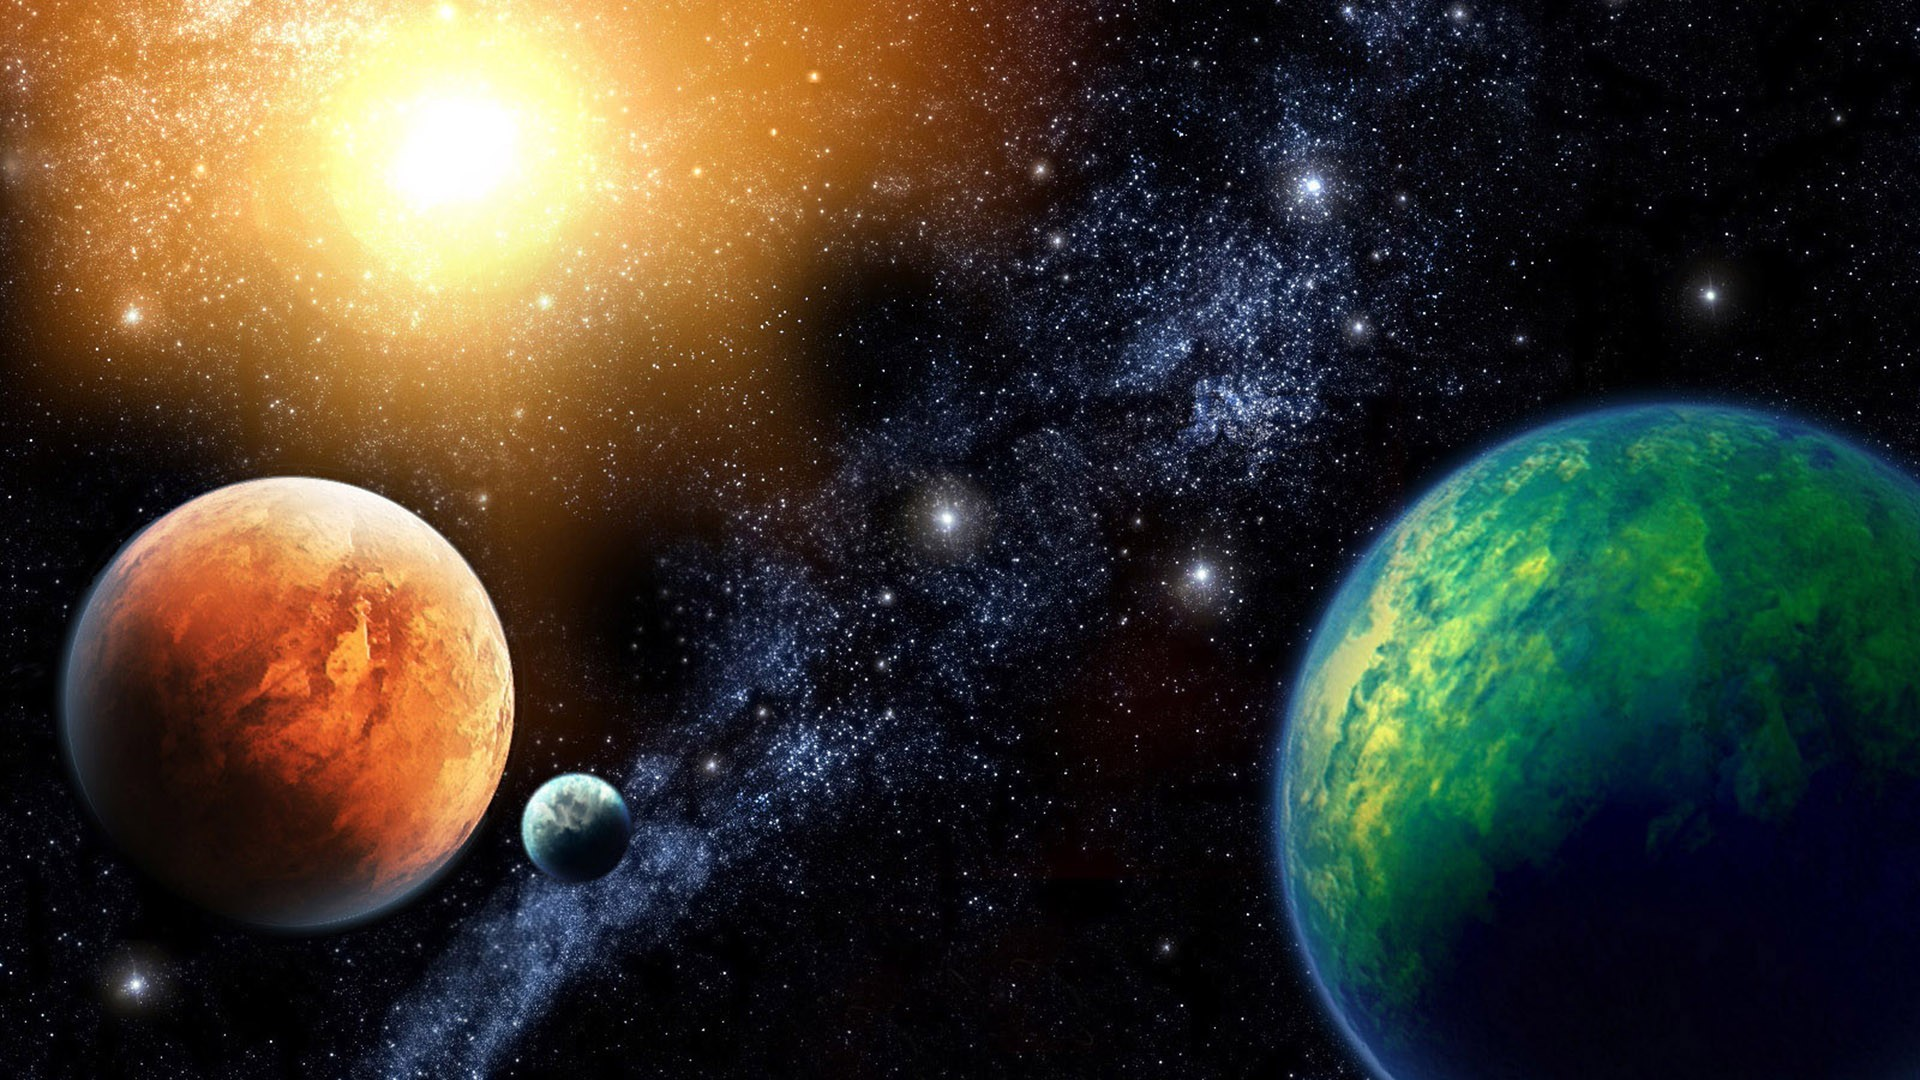 Don T Move To Kepler 452b Just Yet Eight Planetary Properties To Inspire And Wow You